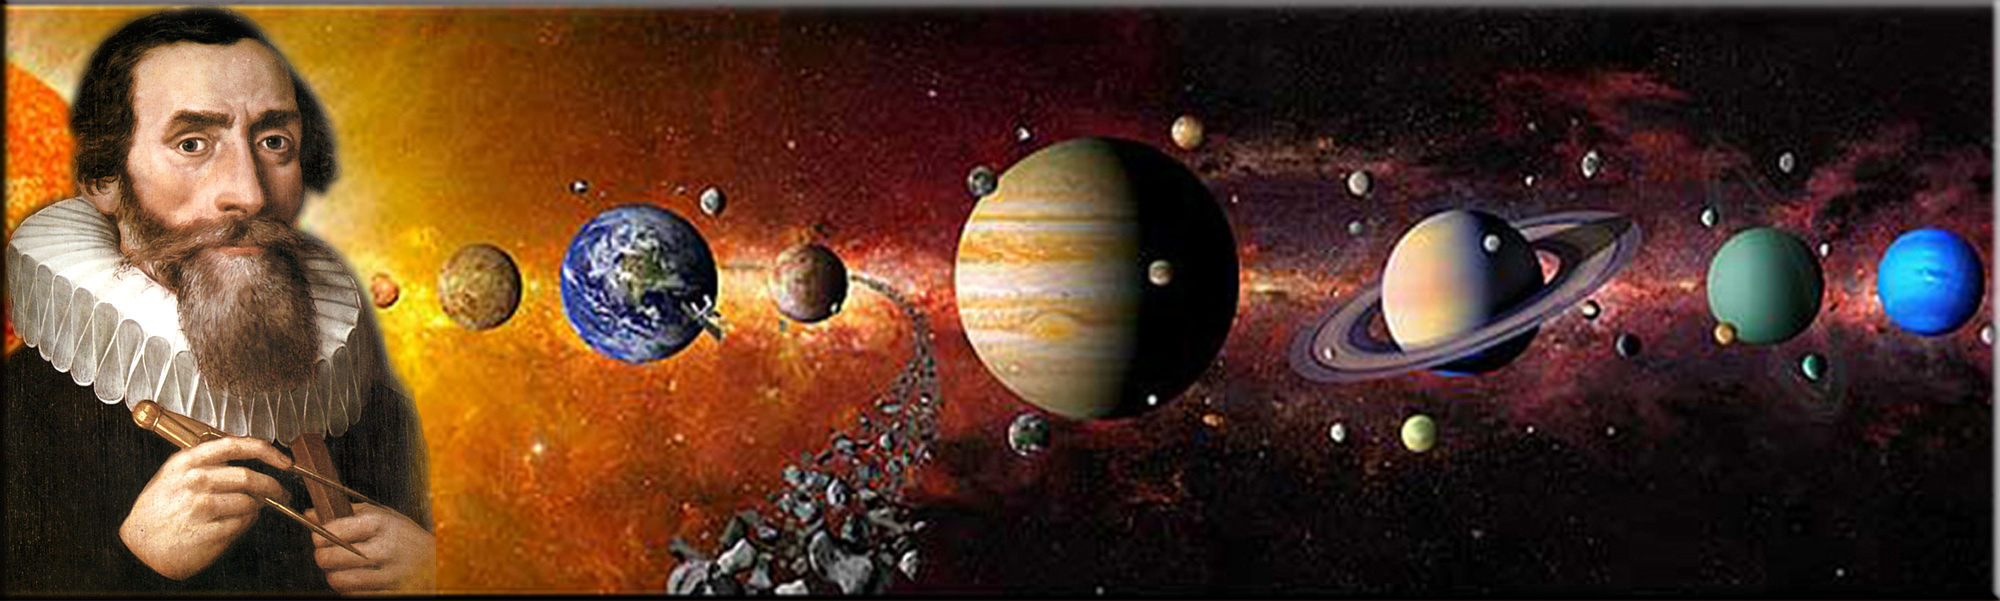 a biography of johannes kepler and his three laws of planetary motion Life's work because he was so impressed when, as a boy, he saw an  year after  year johannes kepler (1571-1630, below right) came from a  that the order of  the planets and their movement through the sky could be  footnotes which by  themselves were almost three  kepler's 3 laws of planetary motion and kepler .